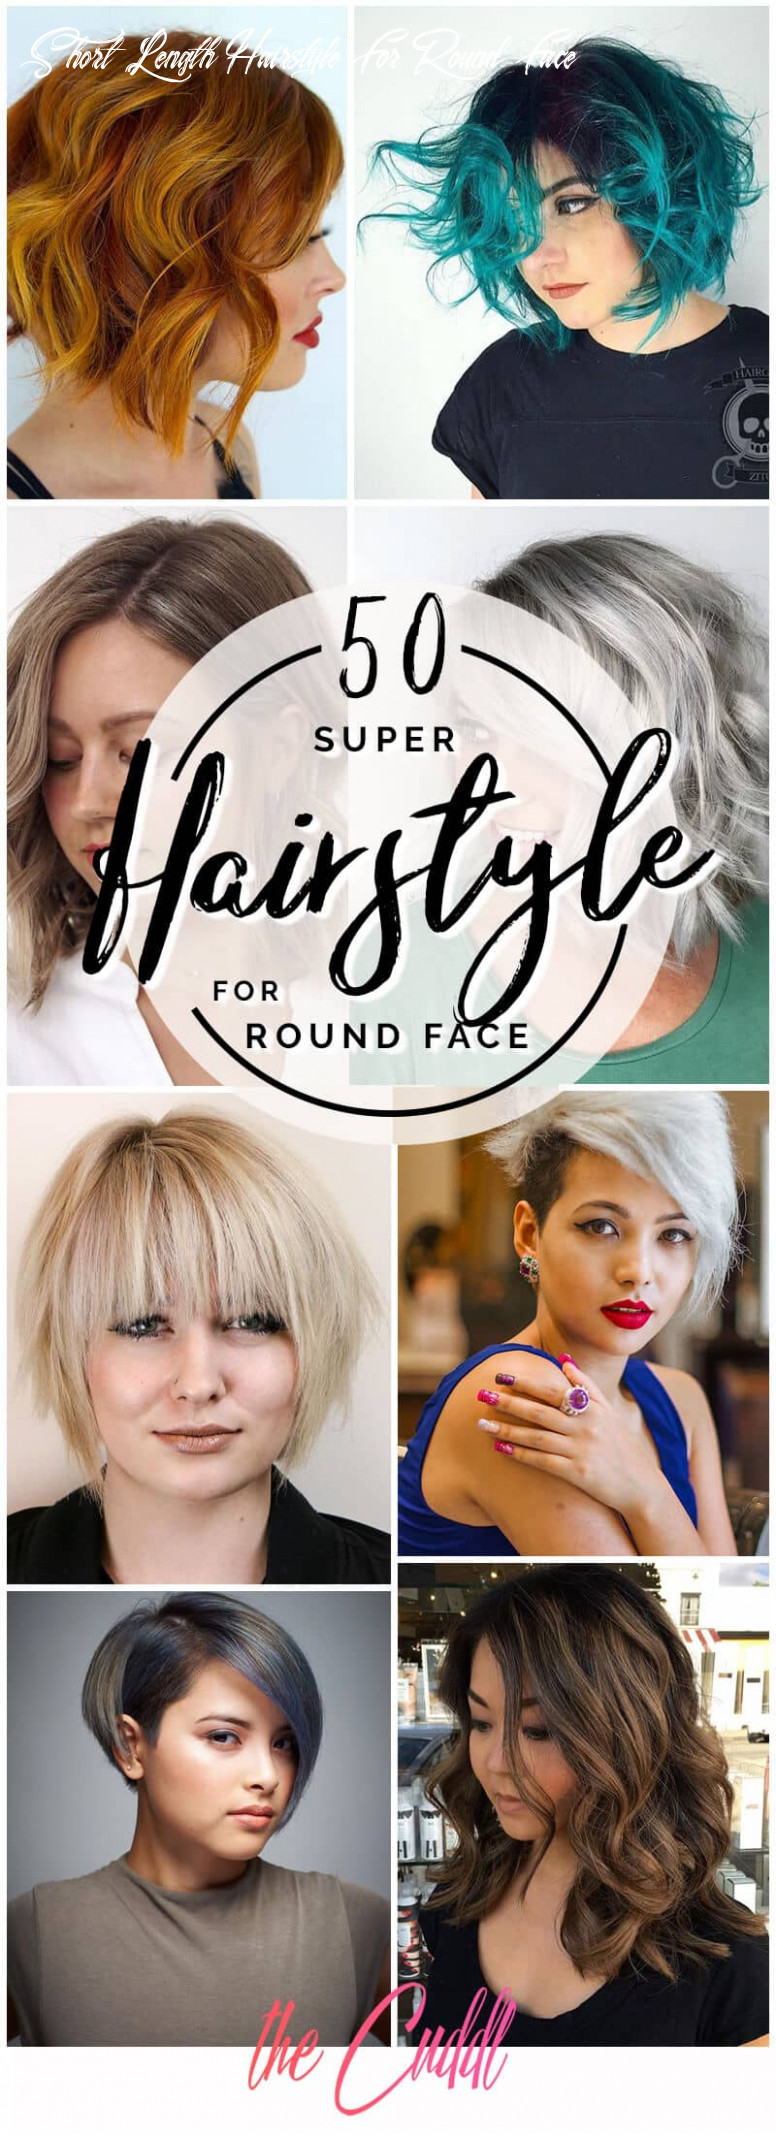 10 fabulous hairstyles for round faces to upgrade your style in 10 short length hairstyle for round face